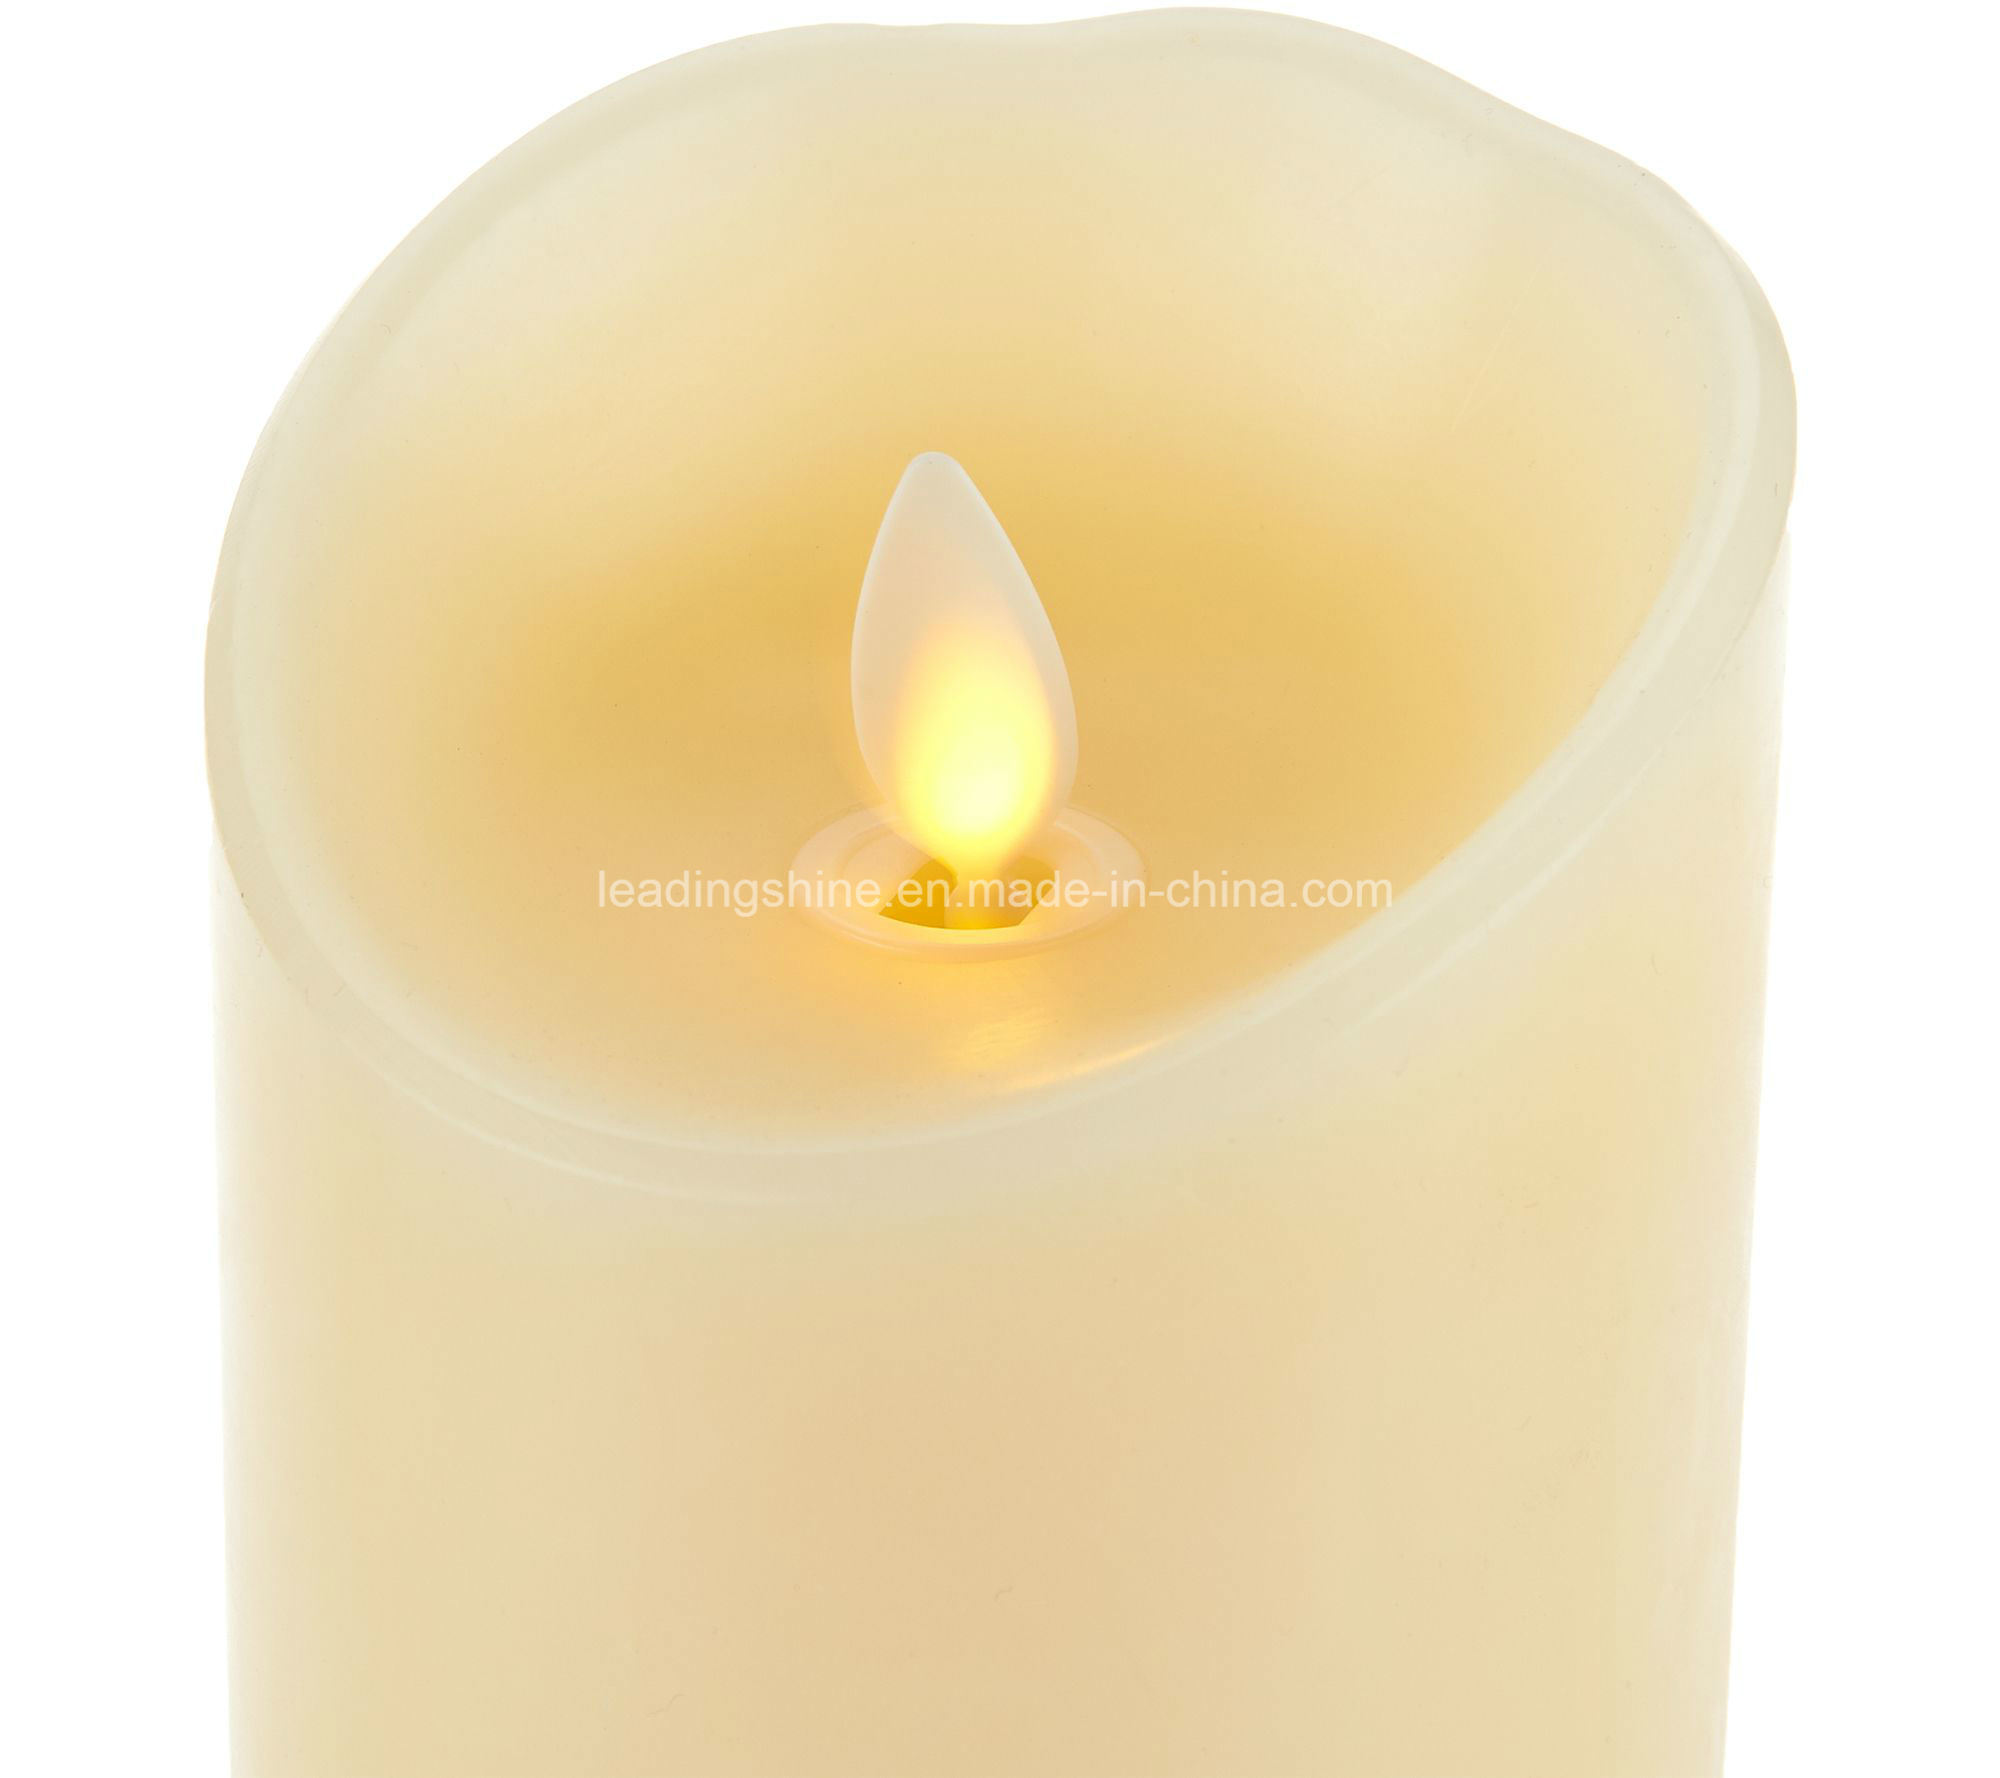 Pure Wax Remote Control Flameless Flickering Candle Light